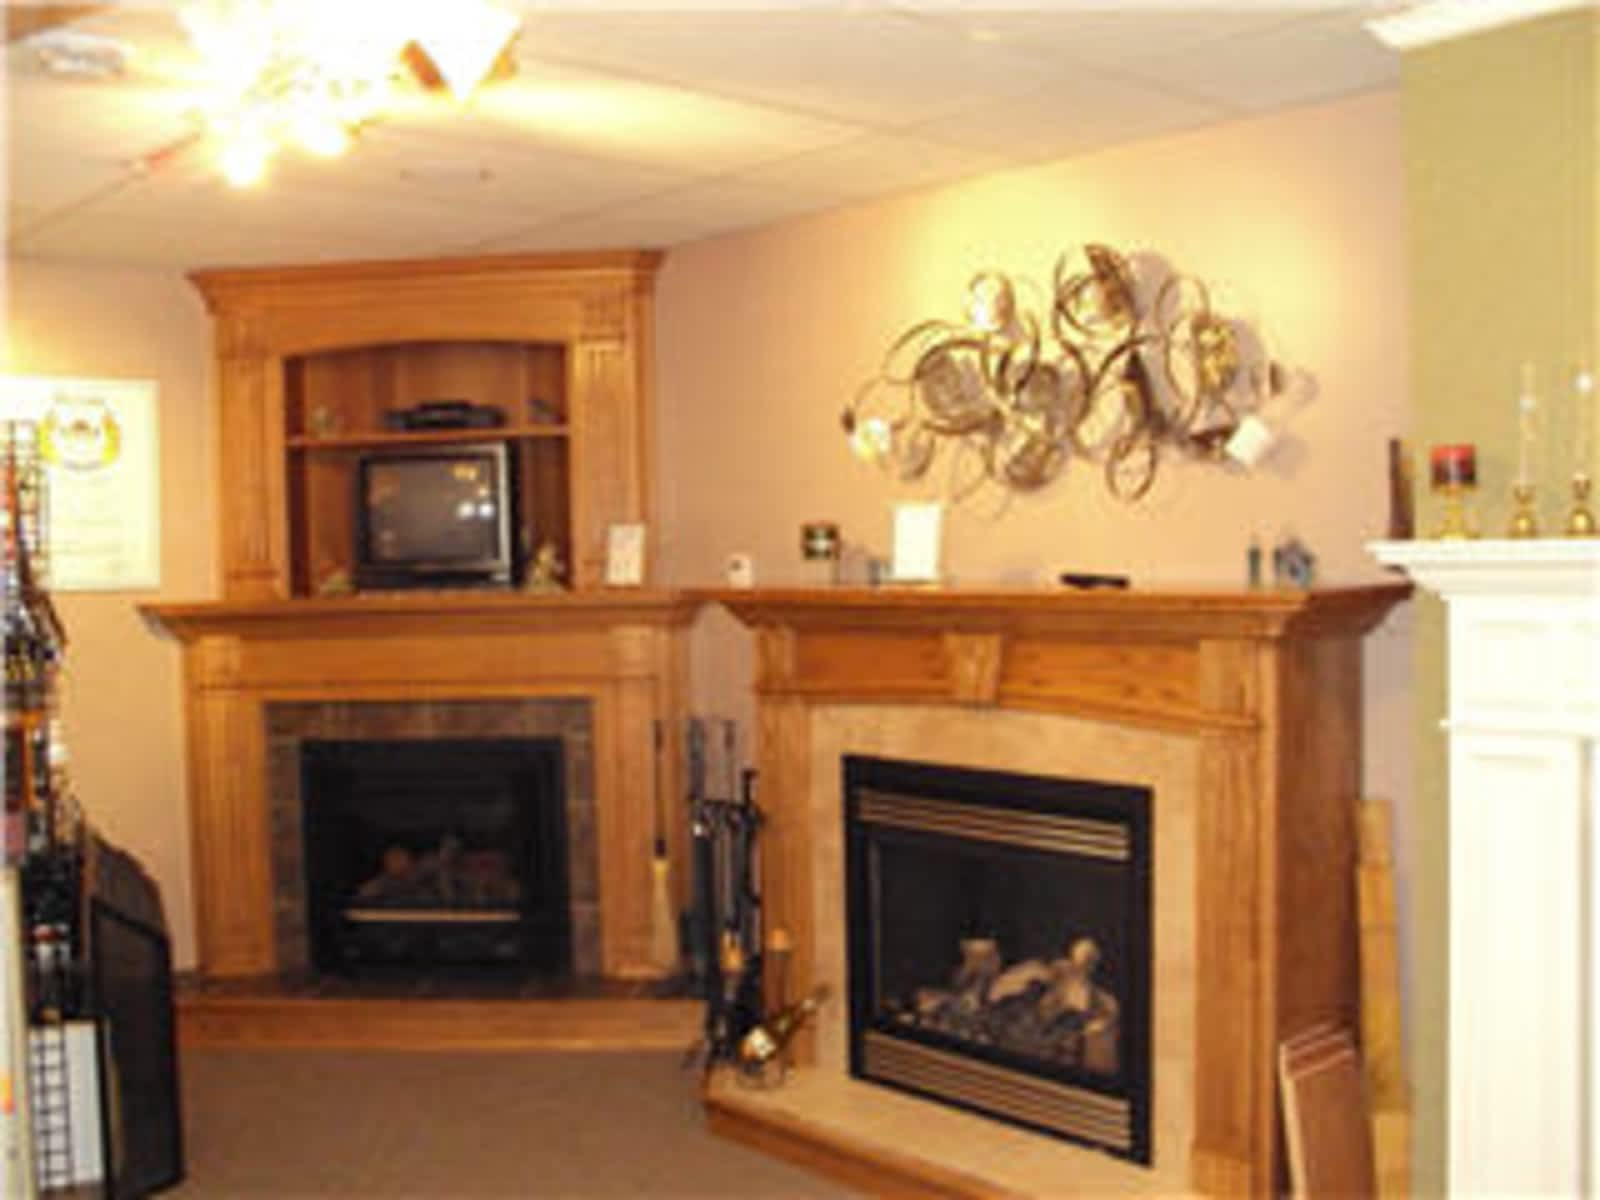 a village fireplace opening hours 623 broadway st wyoming on